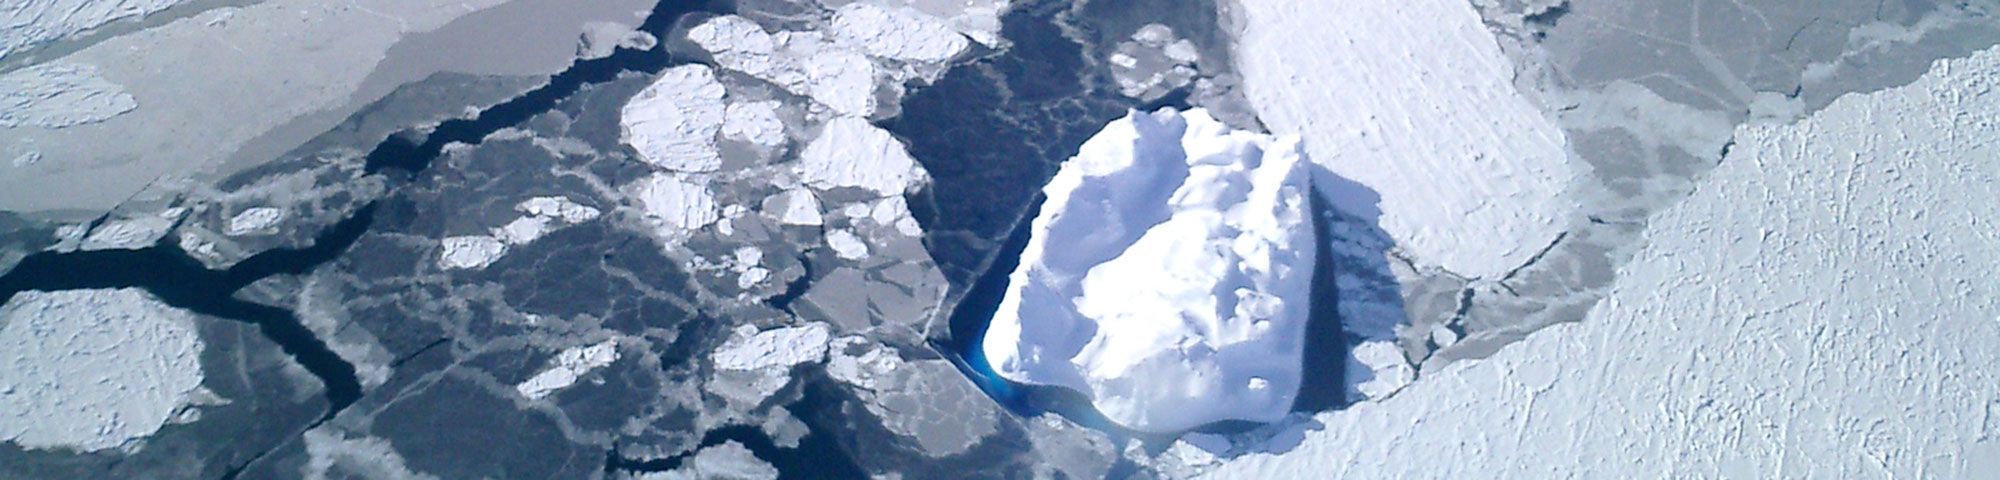 Nila blended into snow-covered sea ice, Anthony Petty, NSIDC